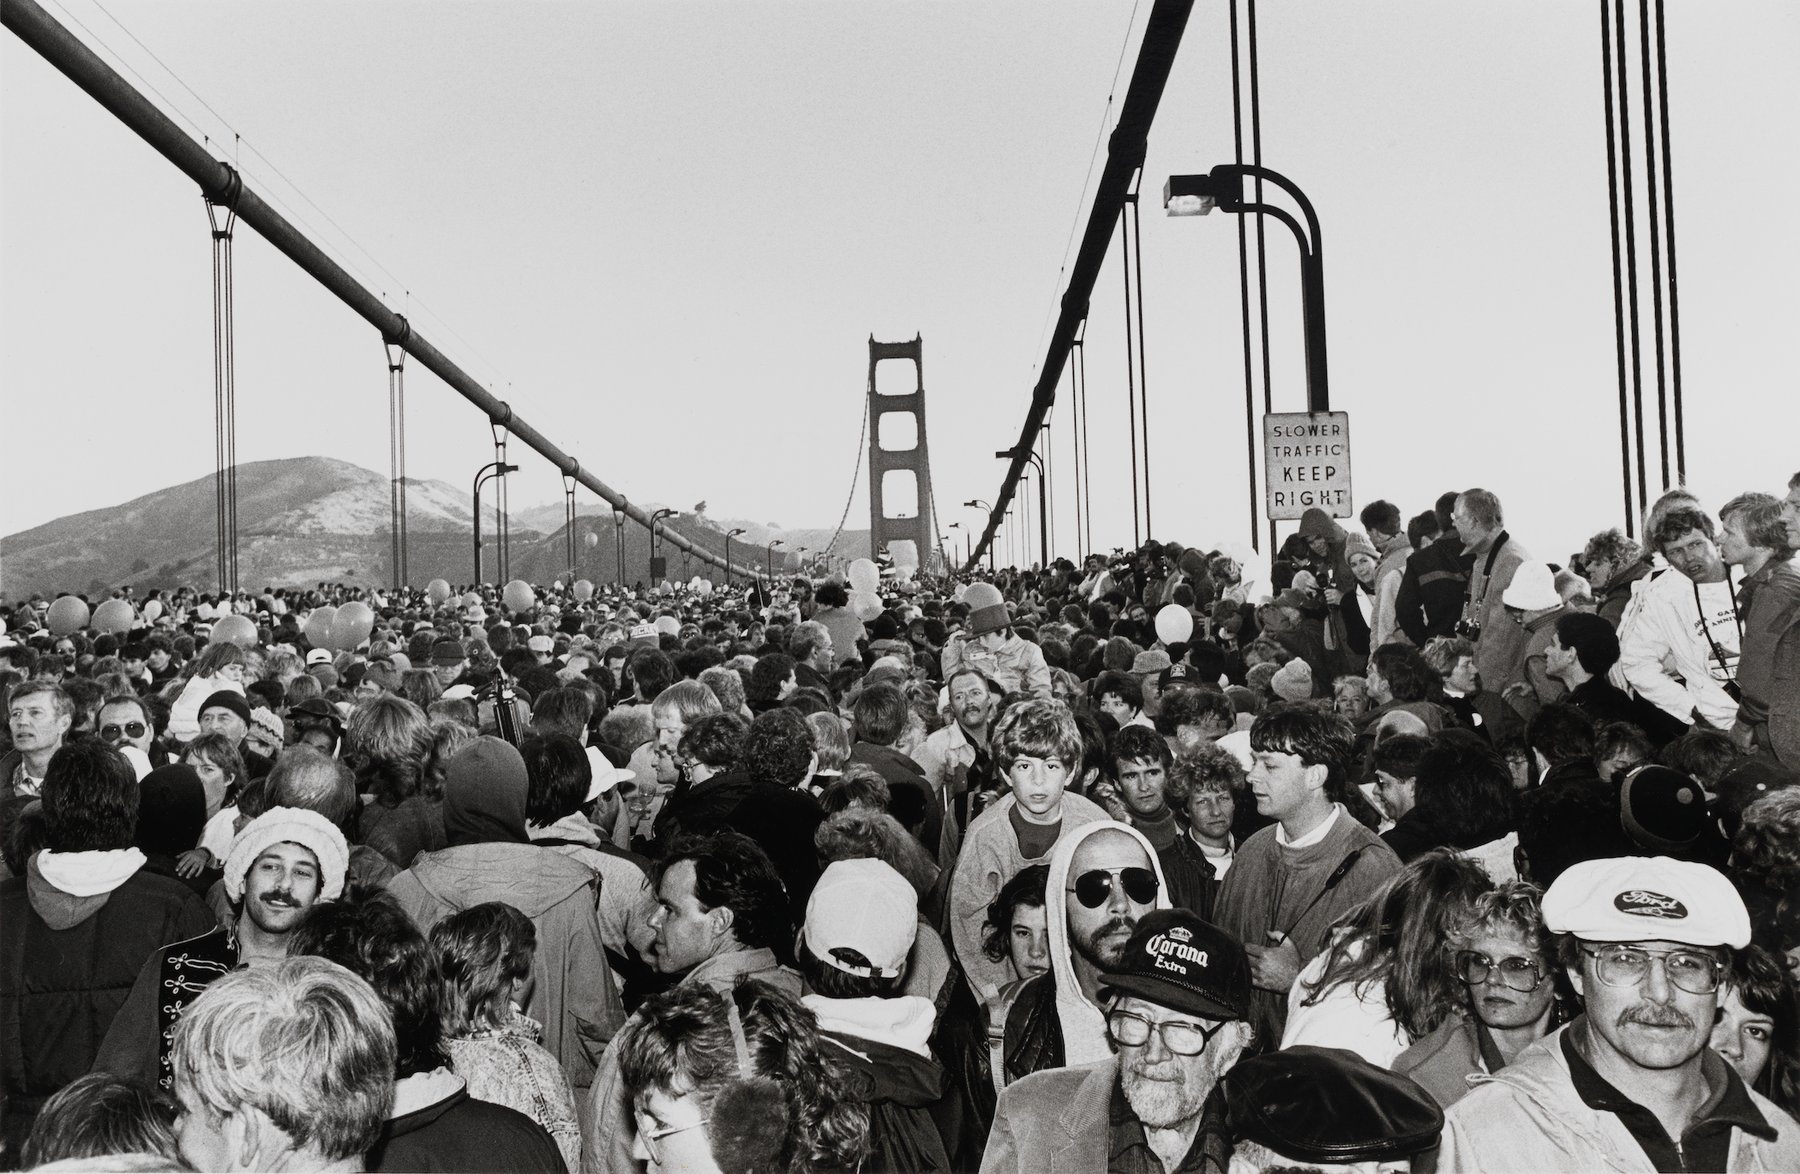 Artwork image, Michael Jang's Golden Gate Bridge Fiftieth Anniversary